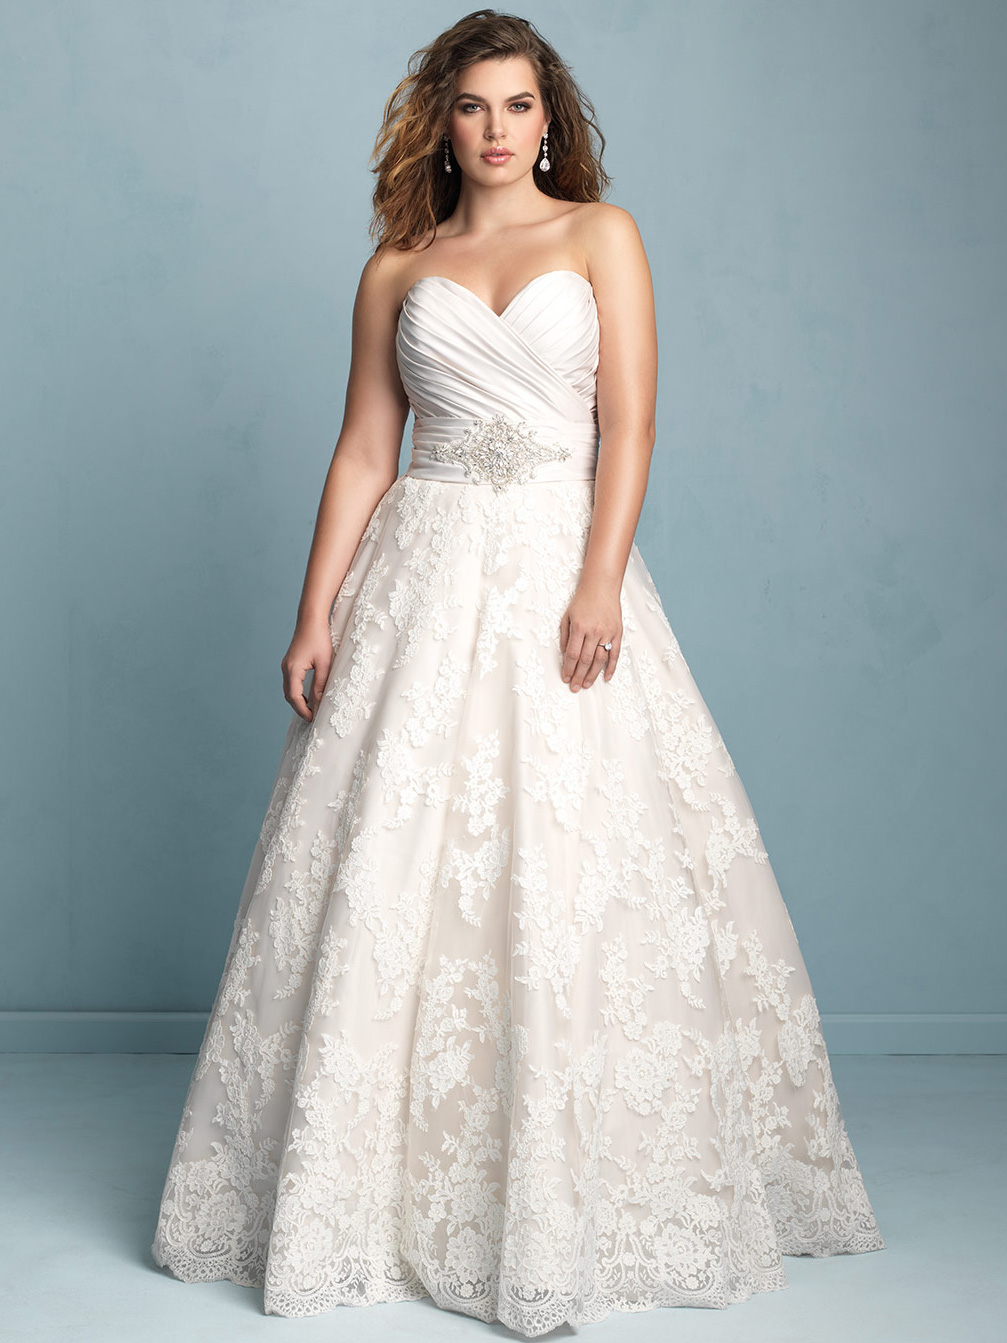 Allure Women Strapless Sweetheart Wedding Dress W351|DimitraDesigns.com